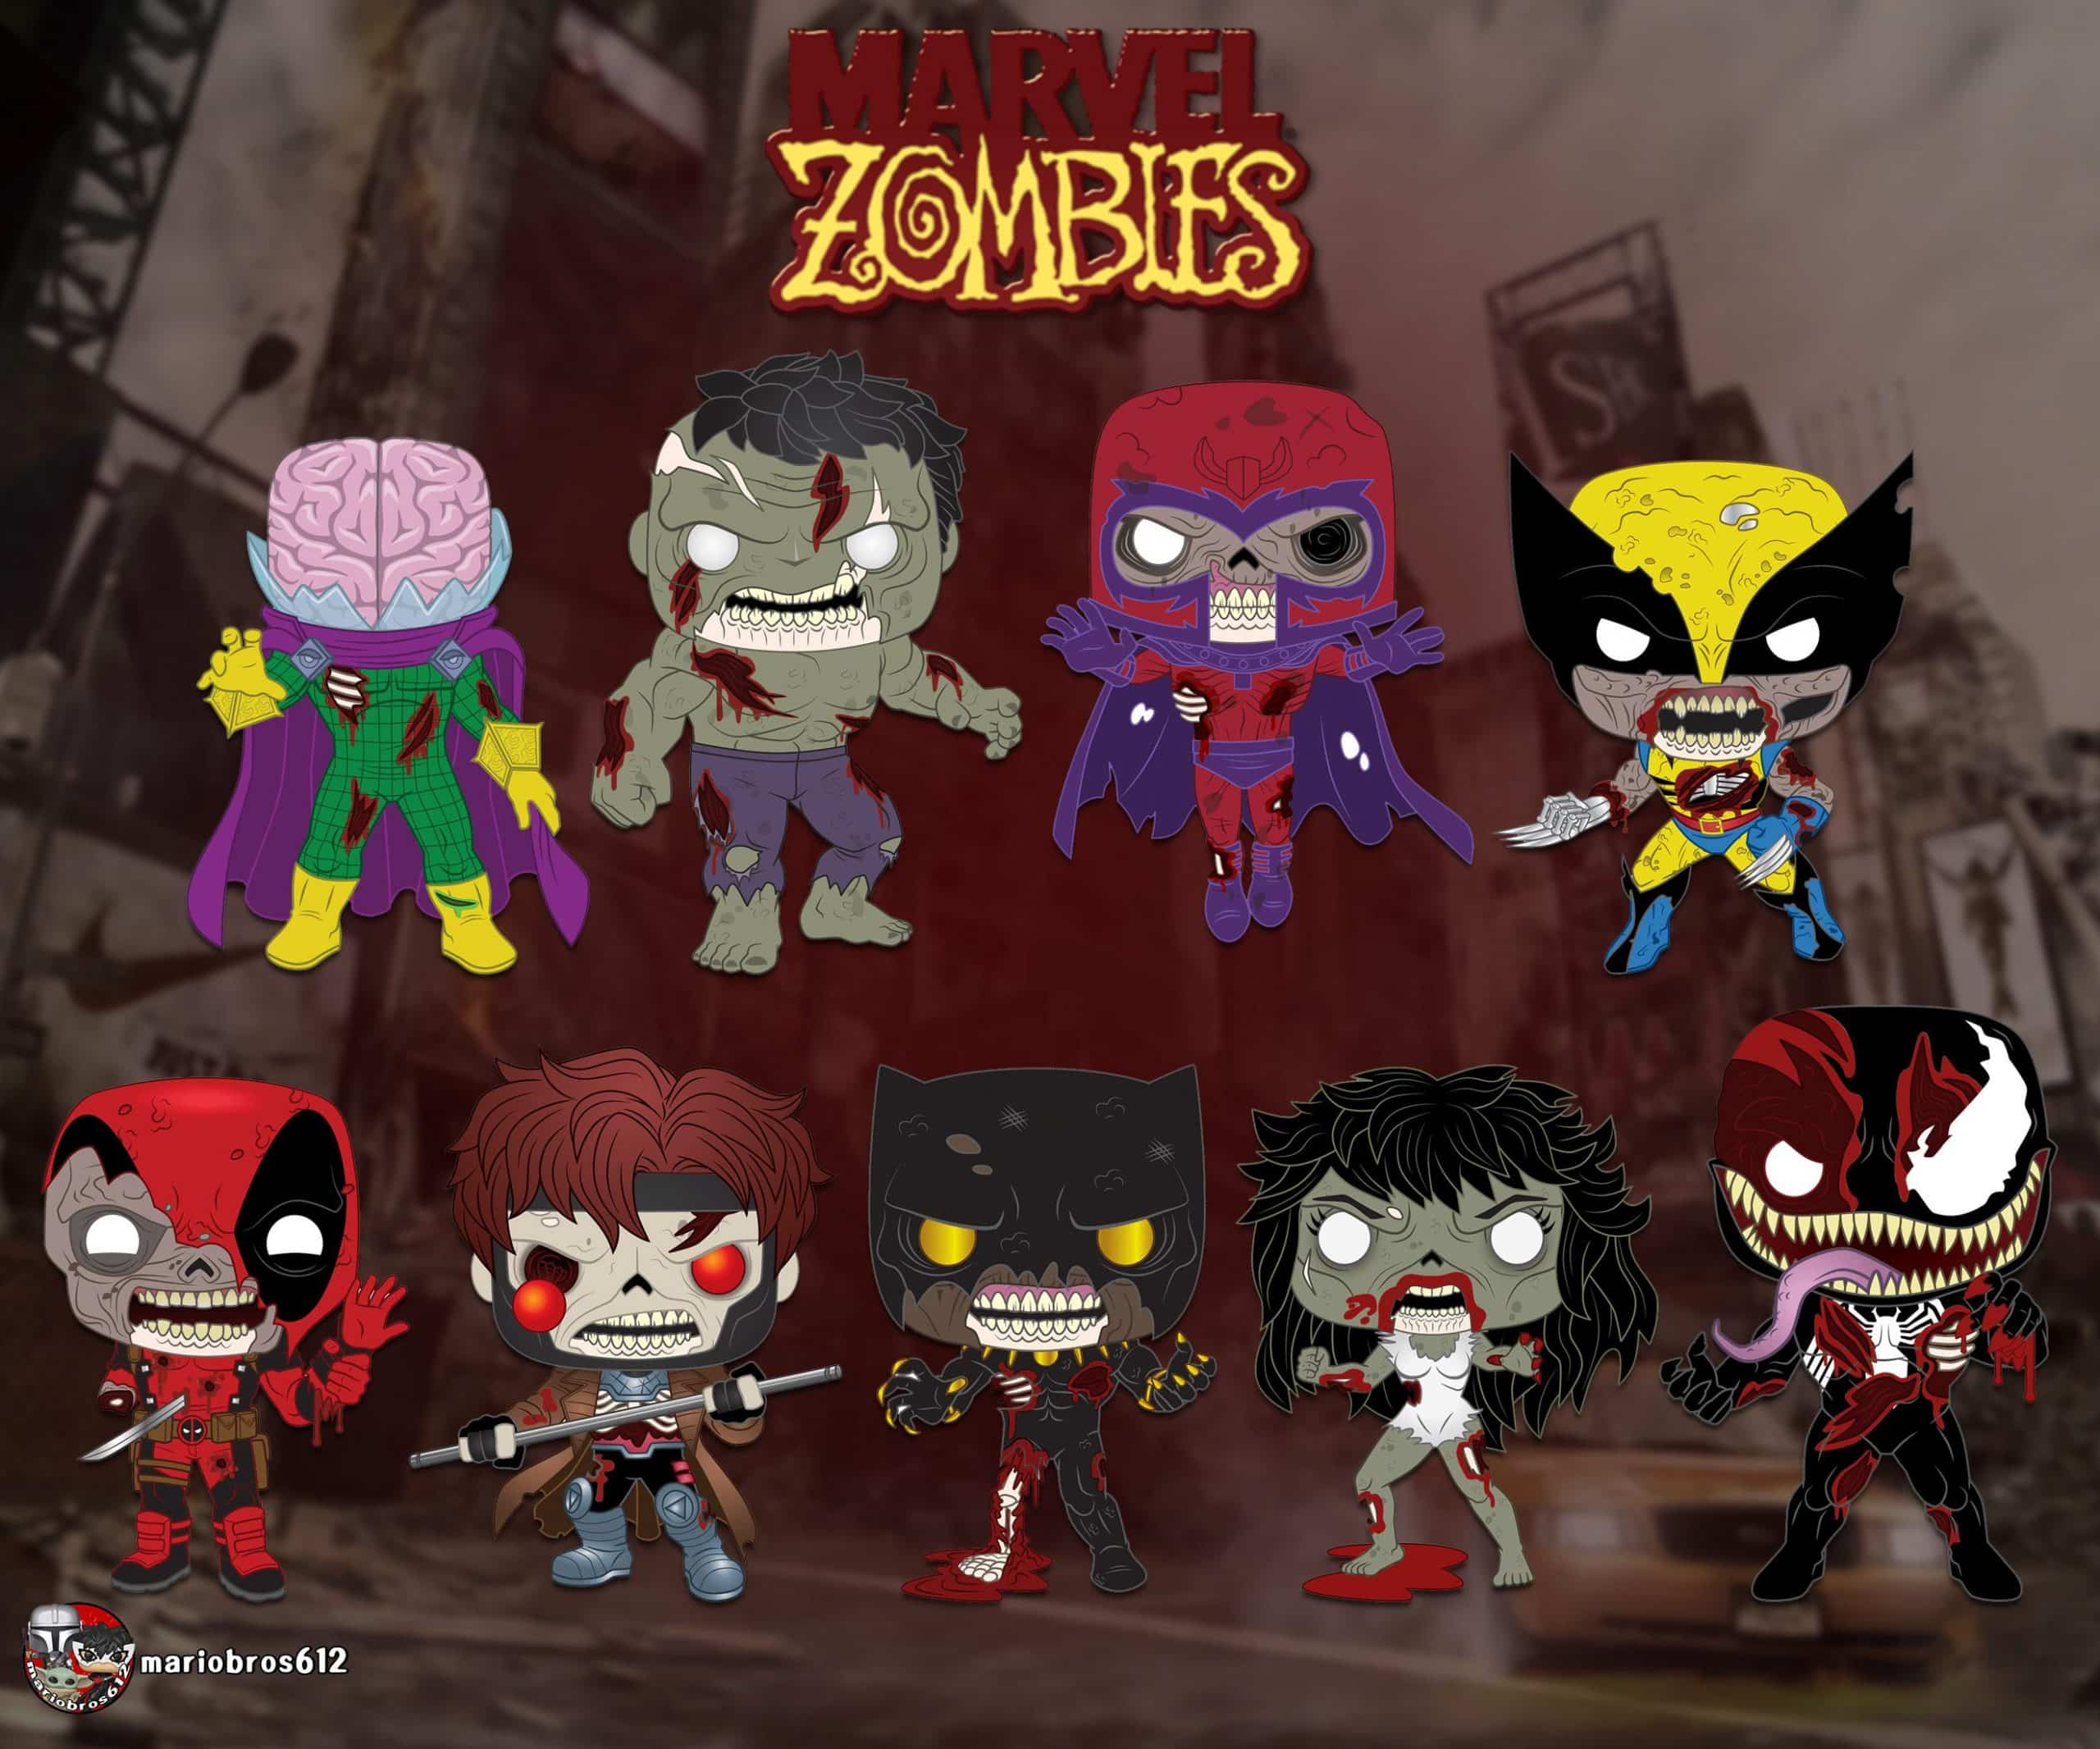 Marvel Zombies Funko Pop! Figures